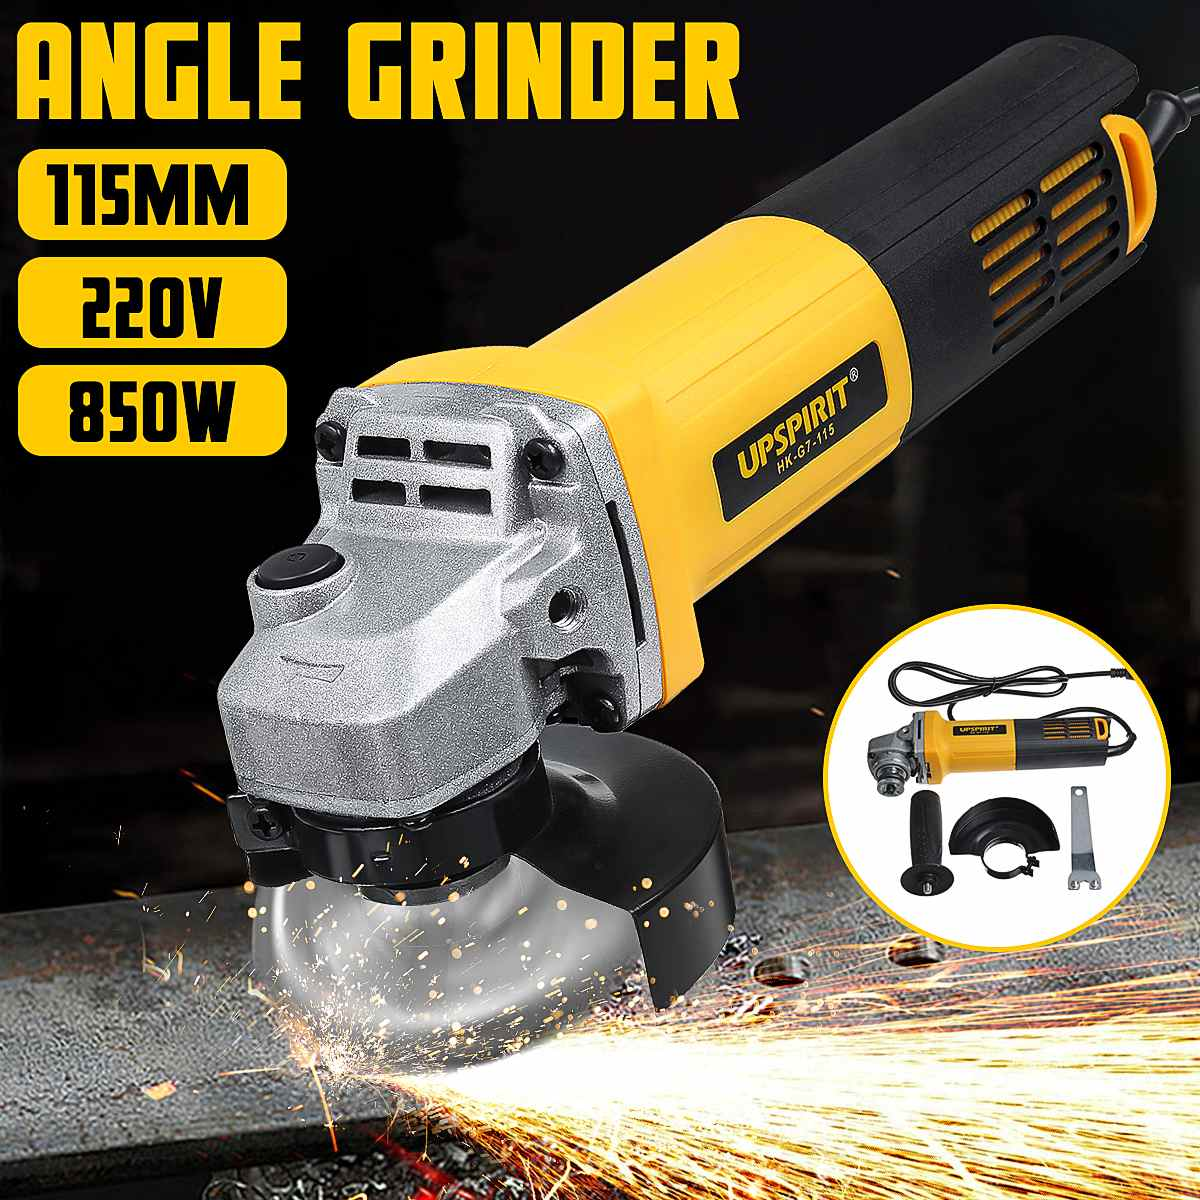 10000RPM High Powers Electric Angle Grinder High Efficiency Dustproof Grinder Cutting Powers Tool Is Used For Cutting Metal